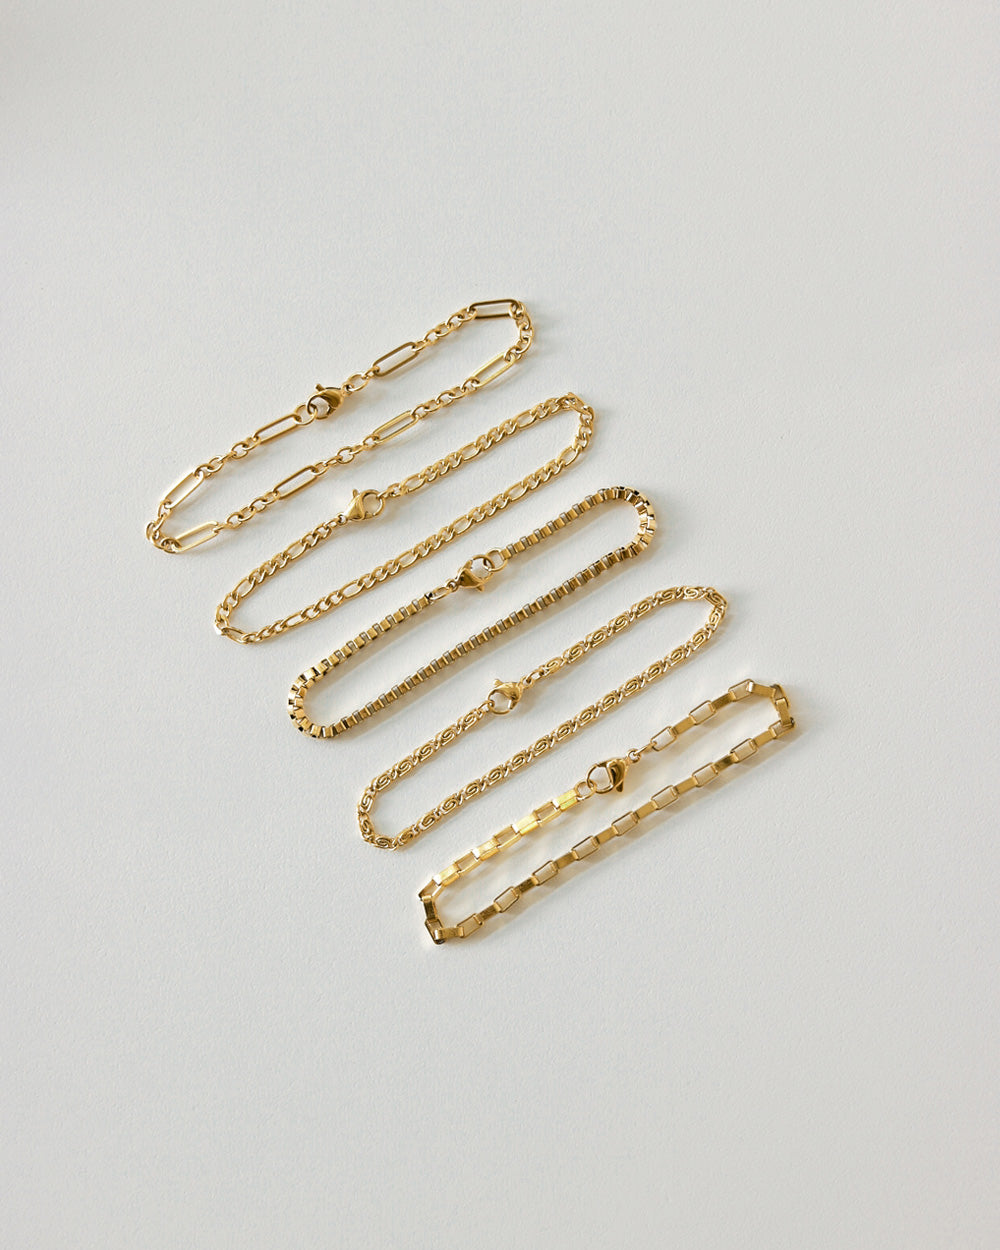 Gold bracelets to be worn singly on its own or to layer on multiple strands - The Hexad